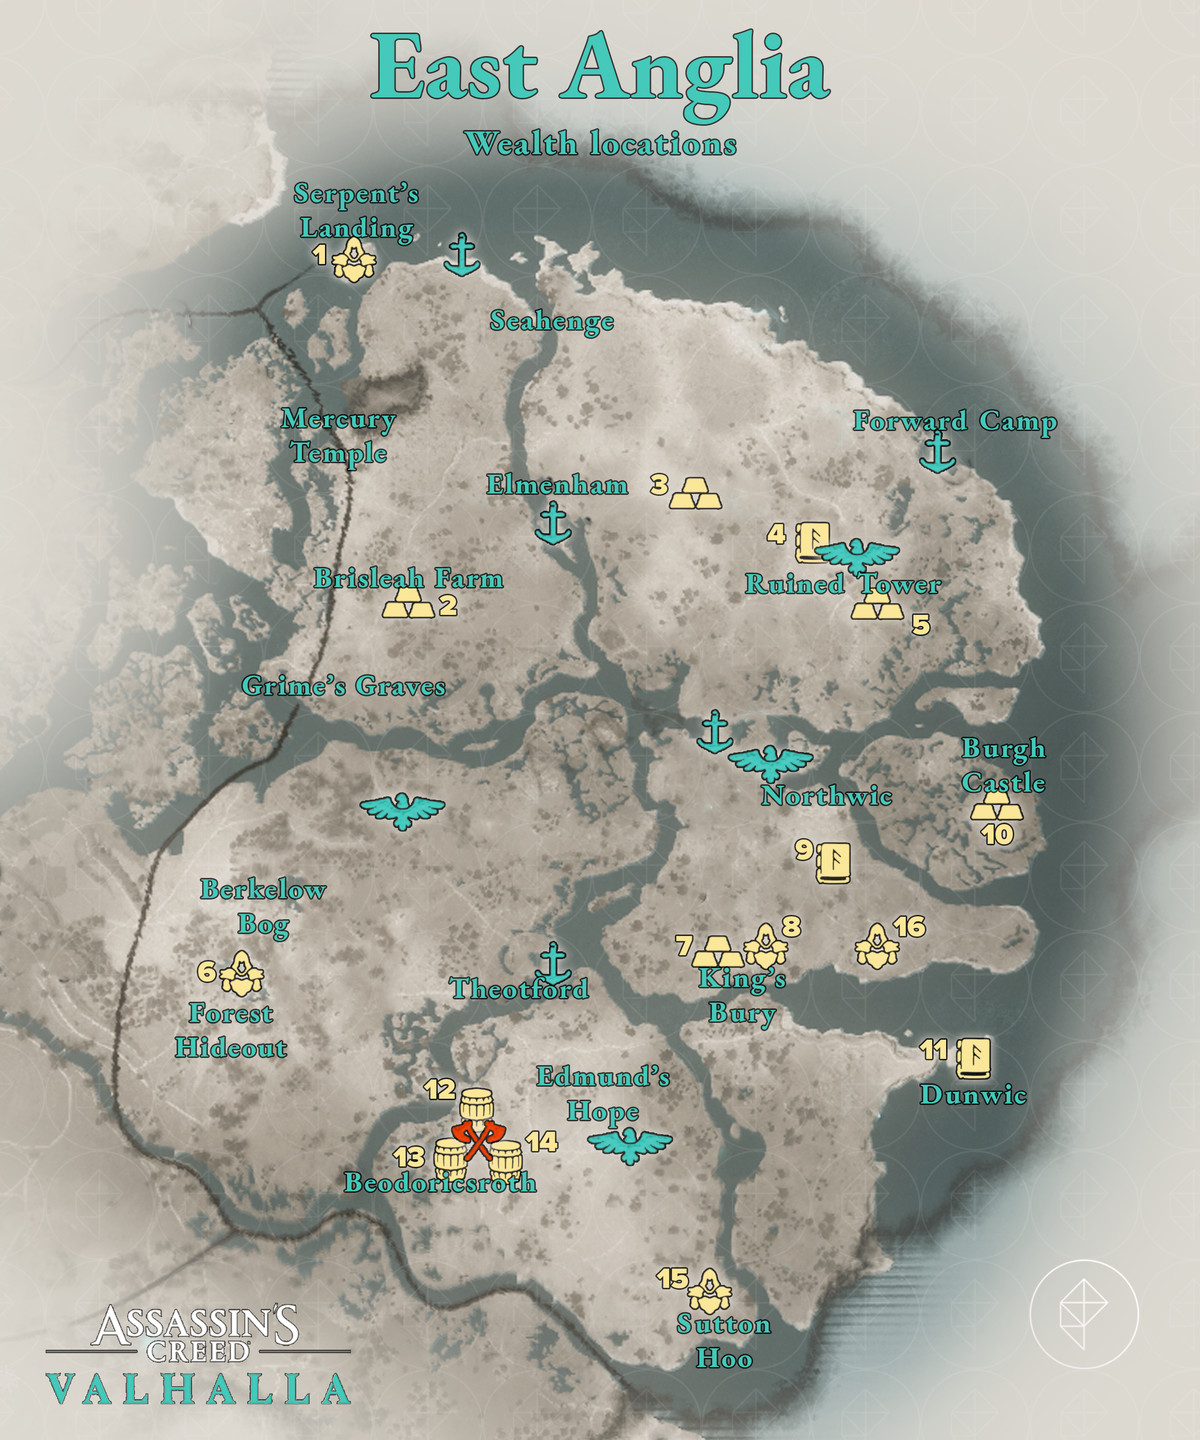 East Anglia Wealth locations map